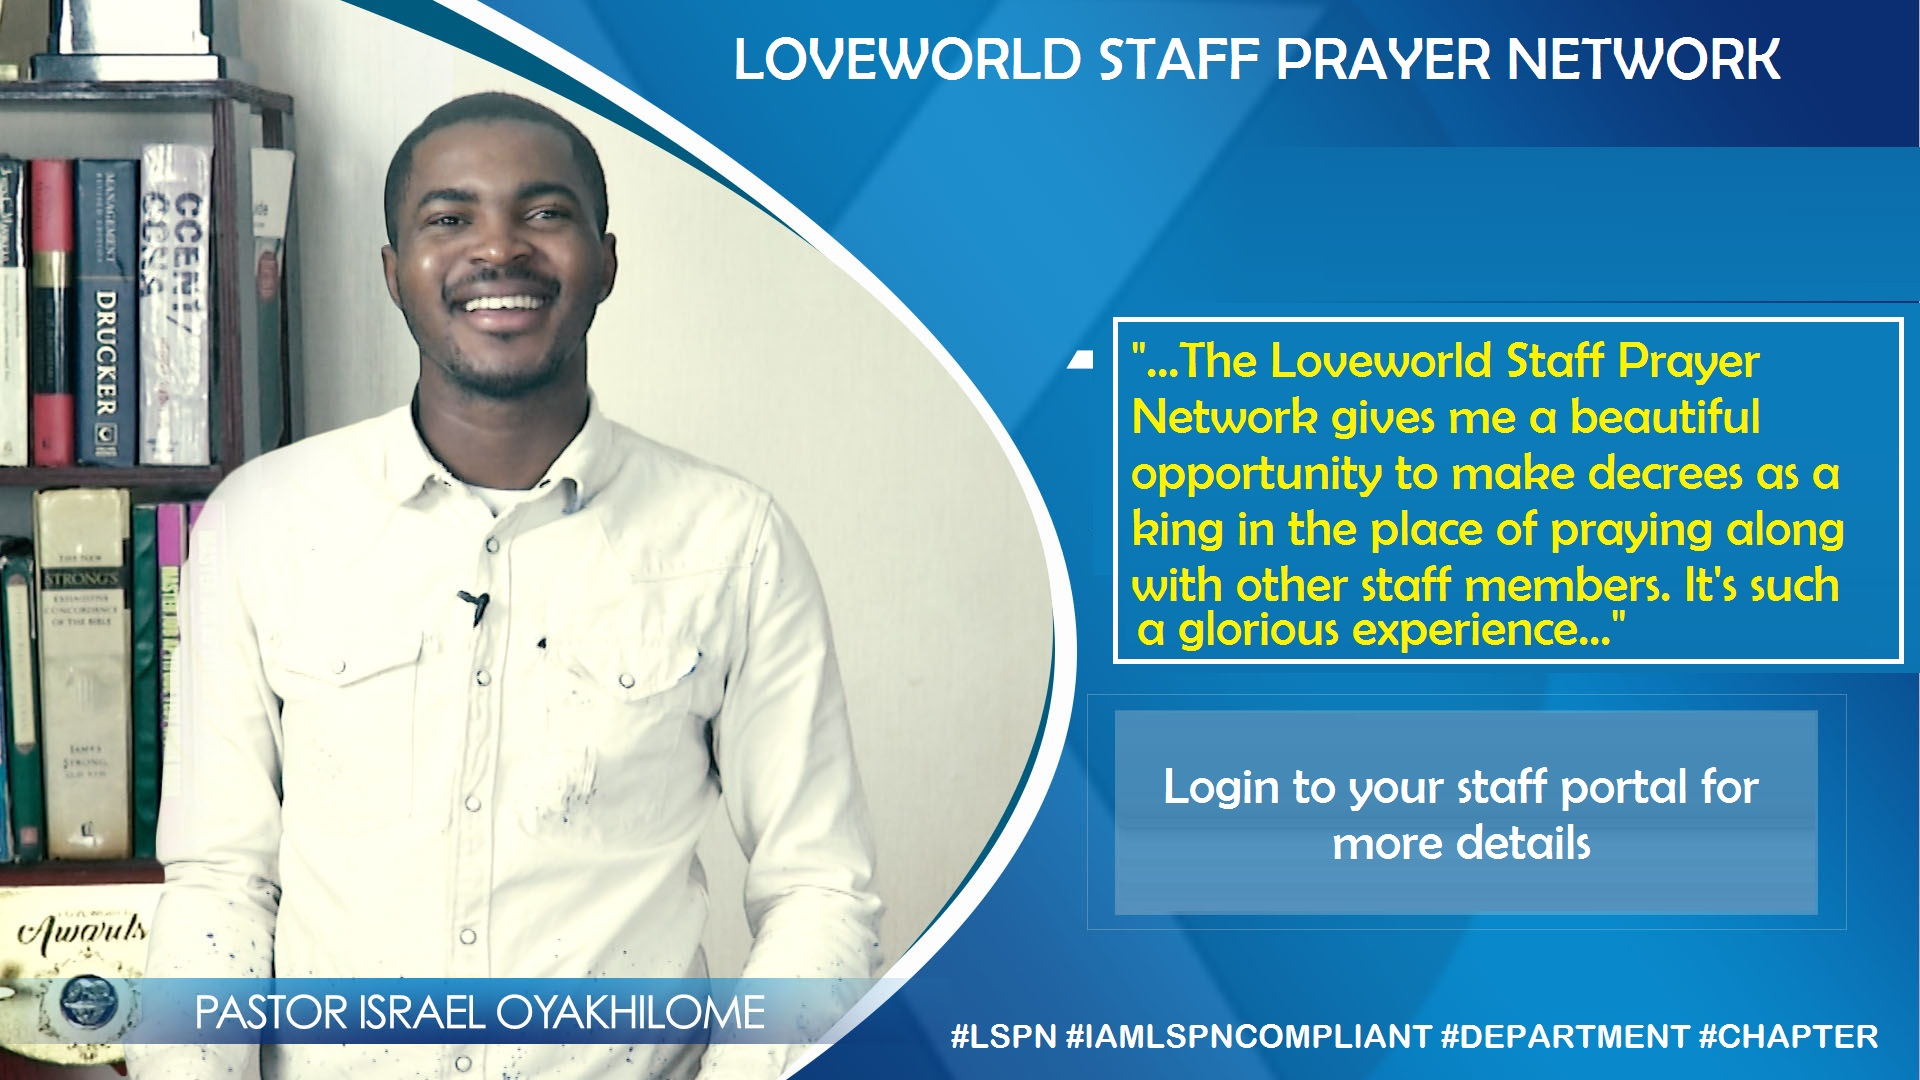 As a Loveworld Staff the